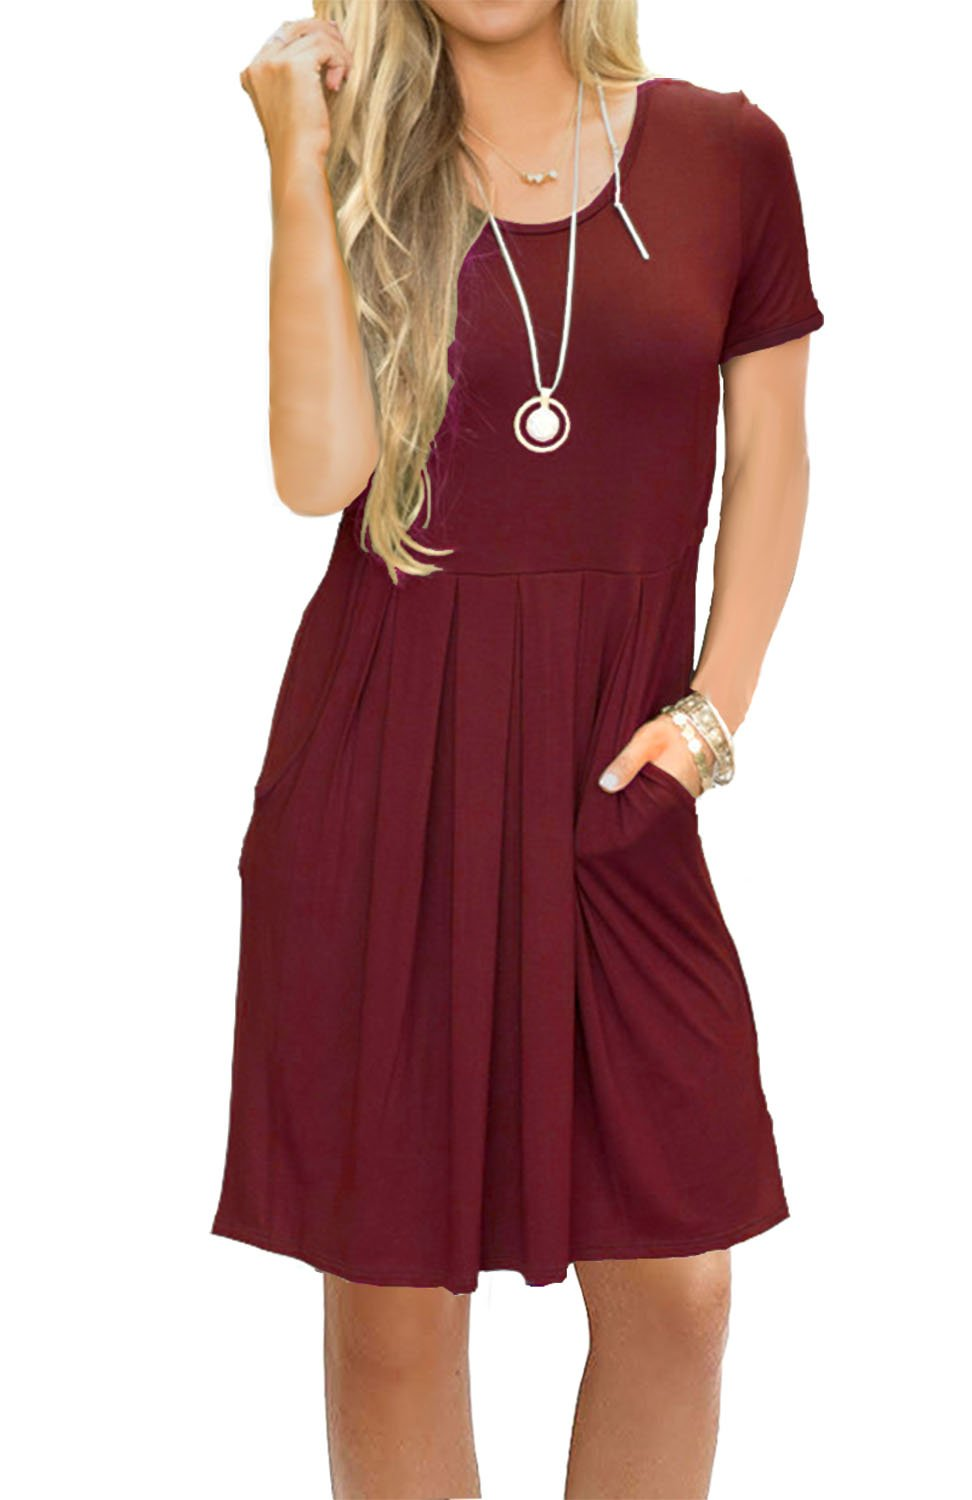 AUSELILY Women's Summer Short Sleeve Flowy Tunic Dress for Work Wine Red L